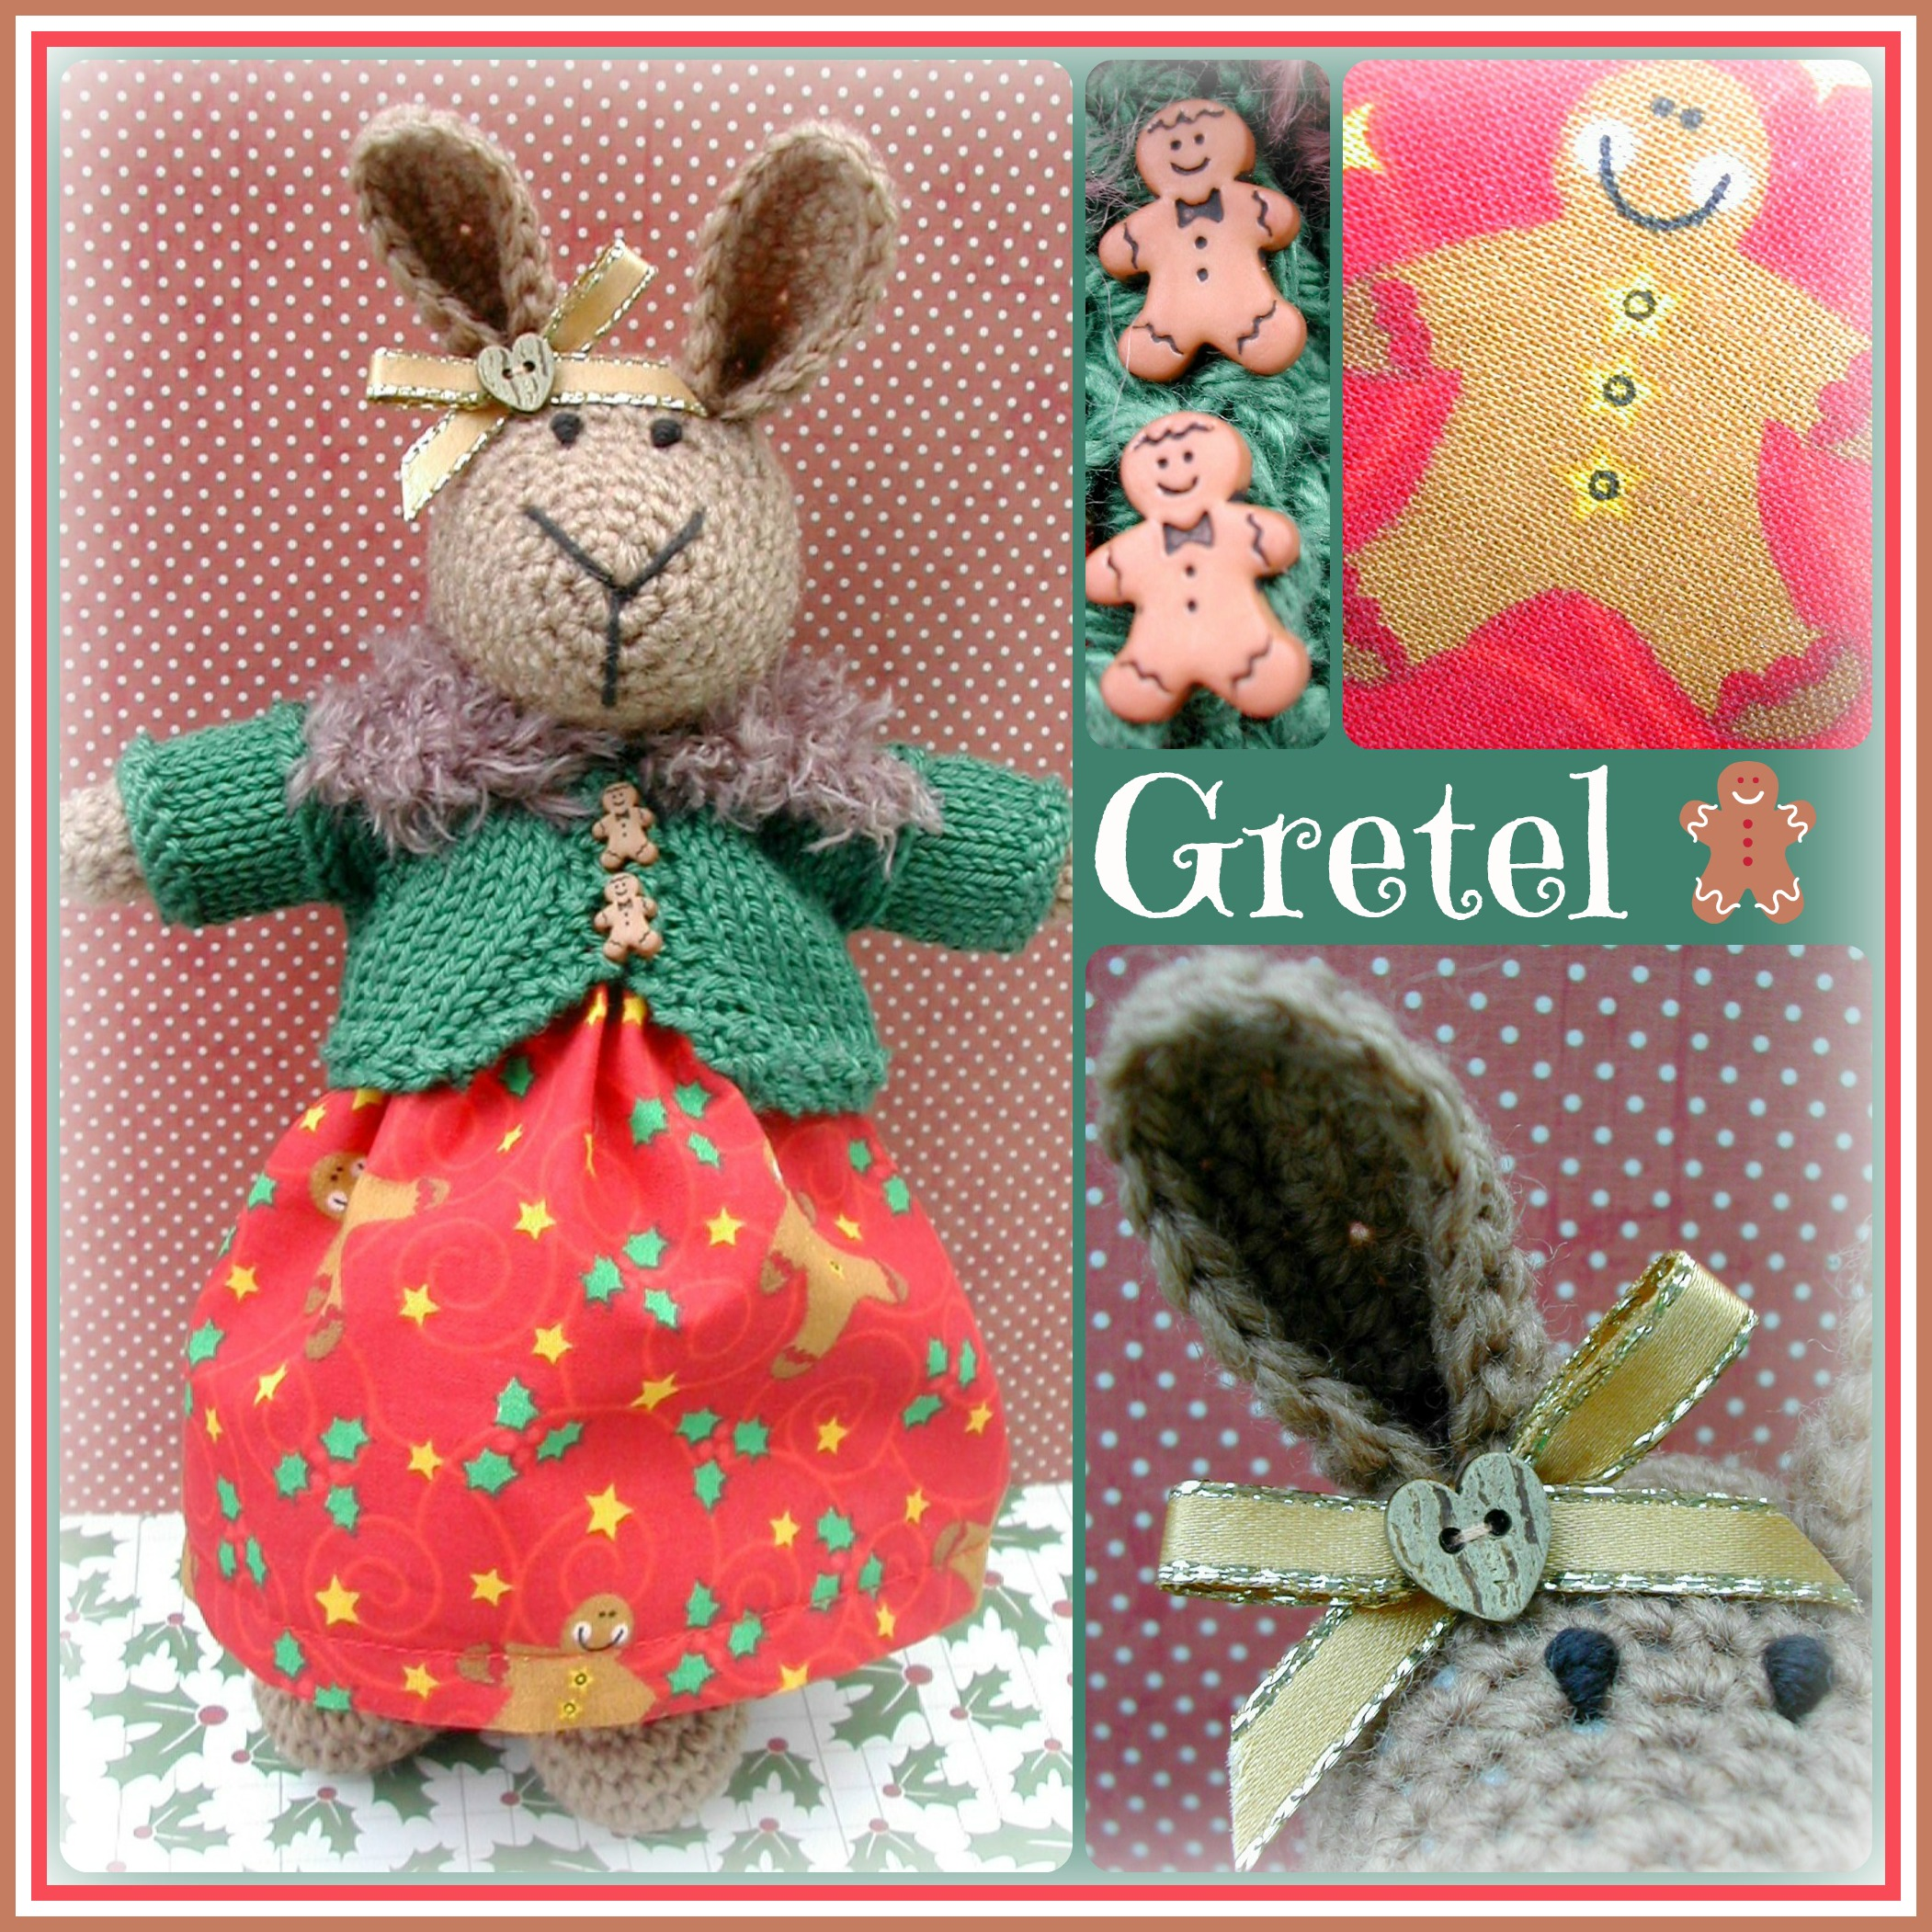 Gretel Collage